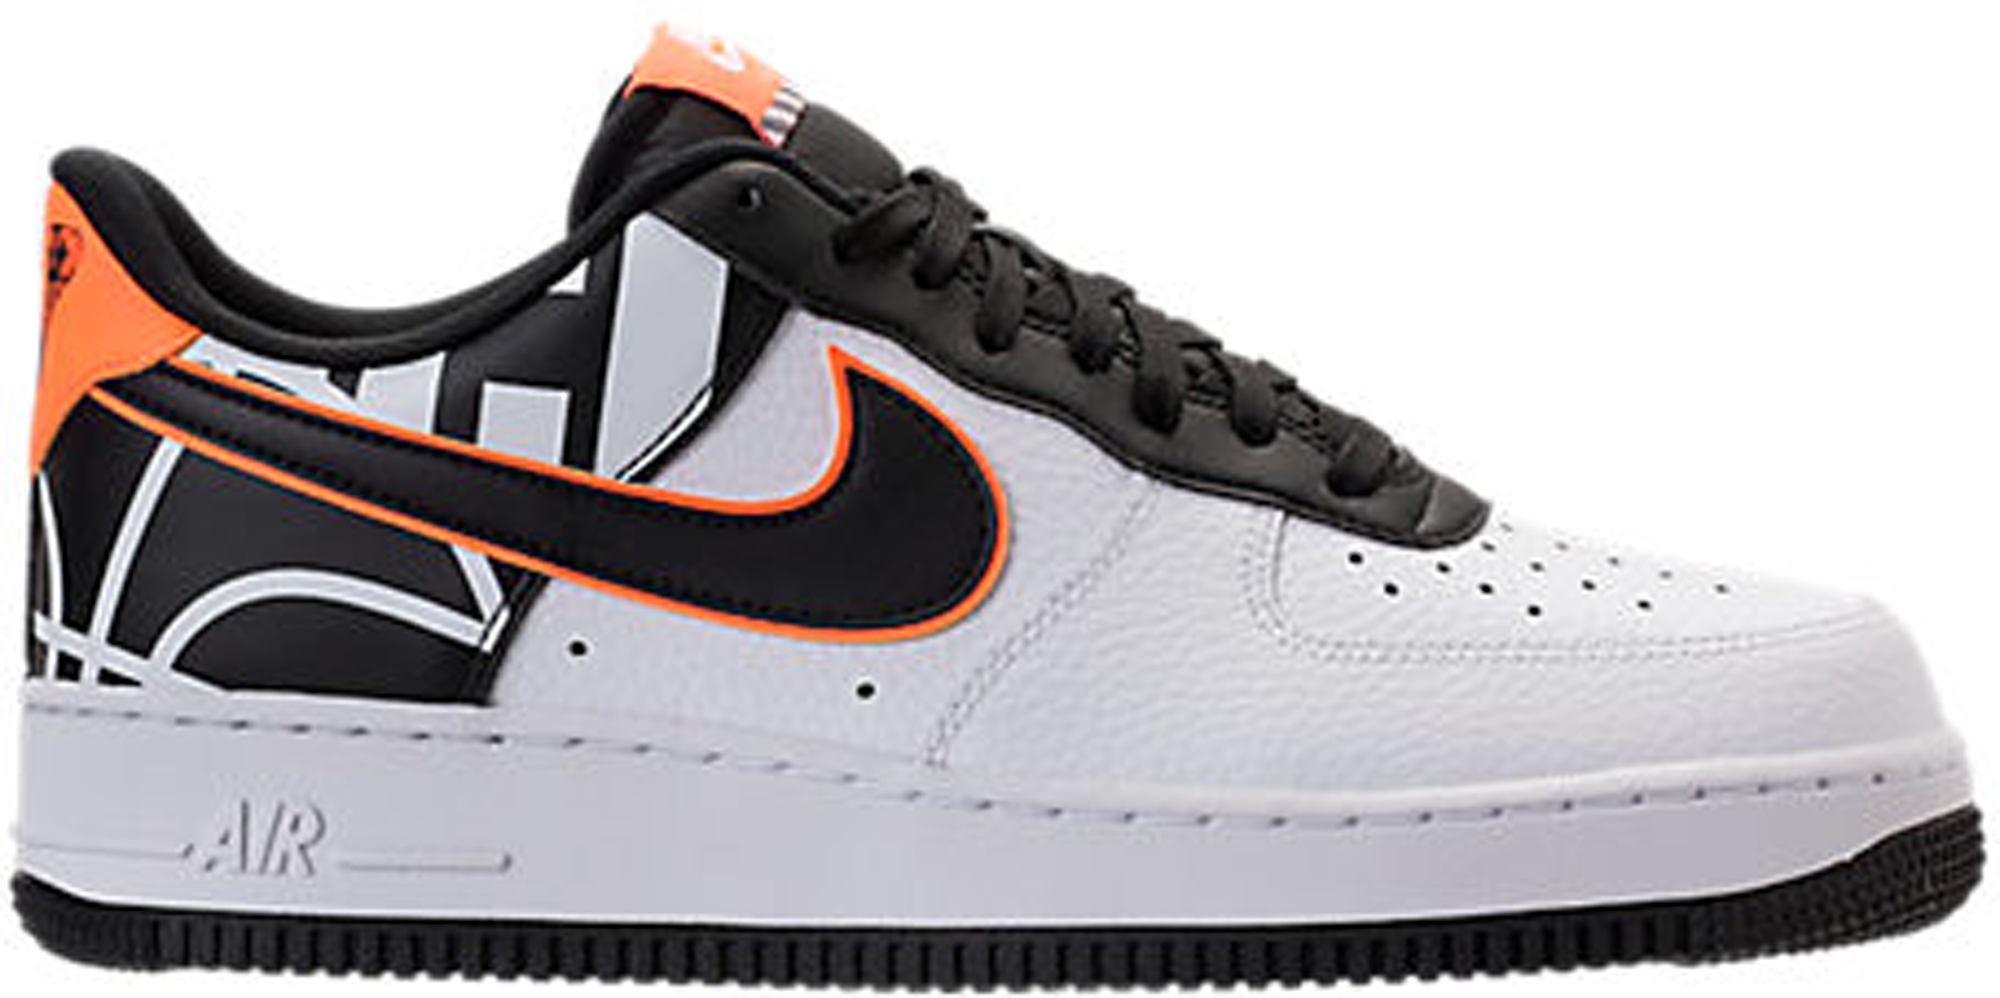 Nike Air Force 1 Faible Orangé